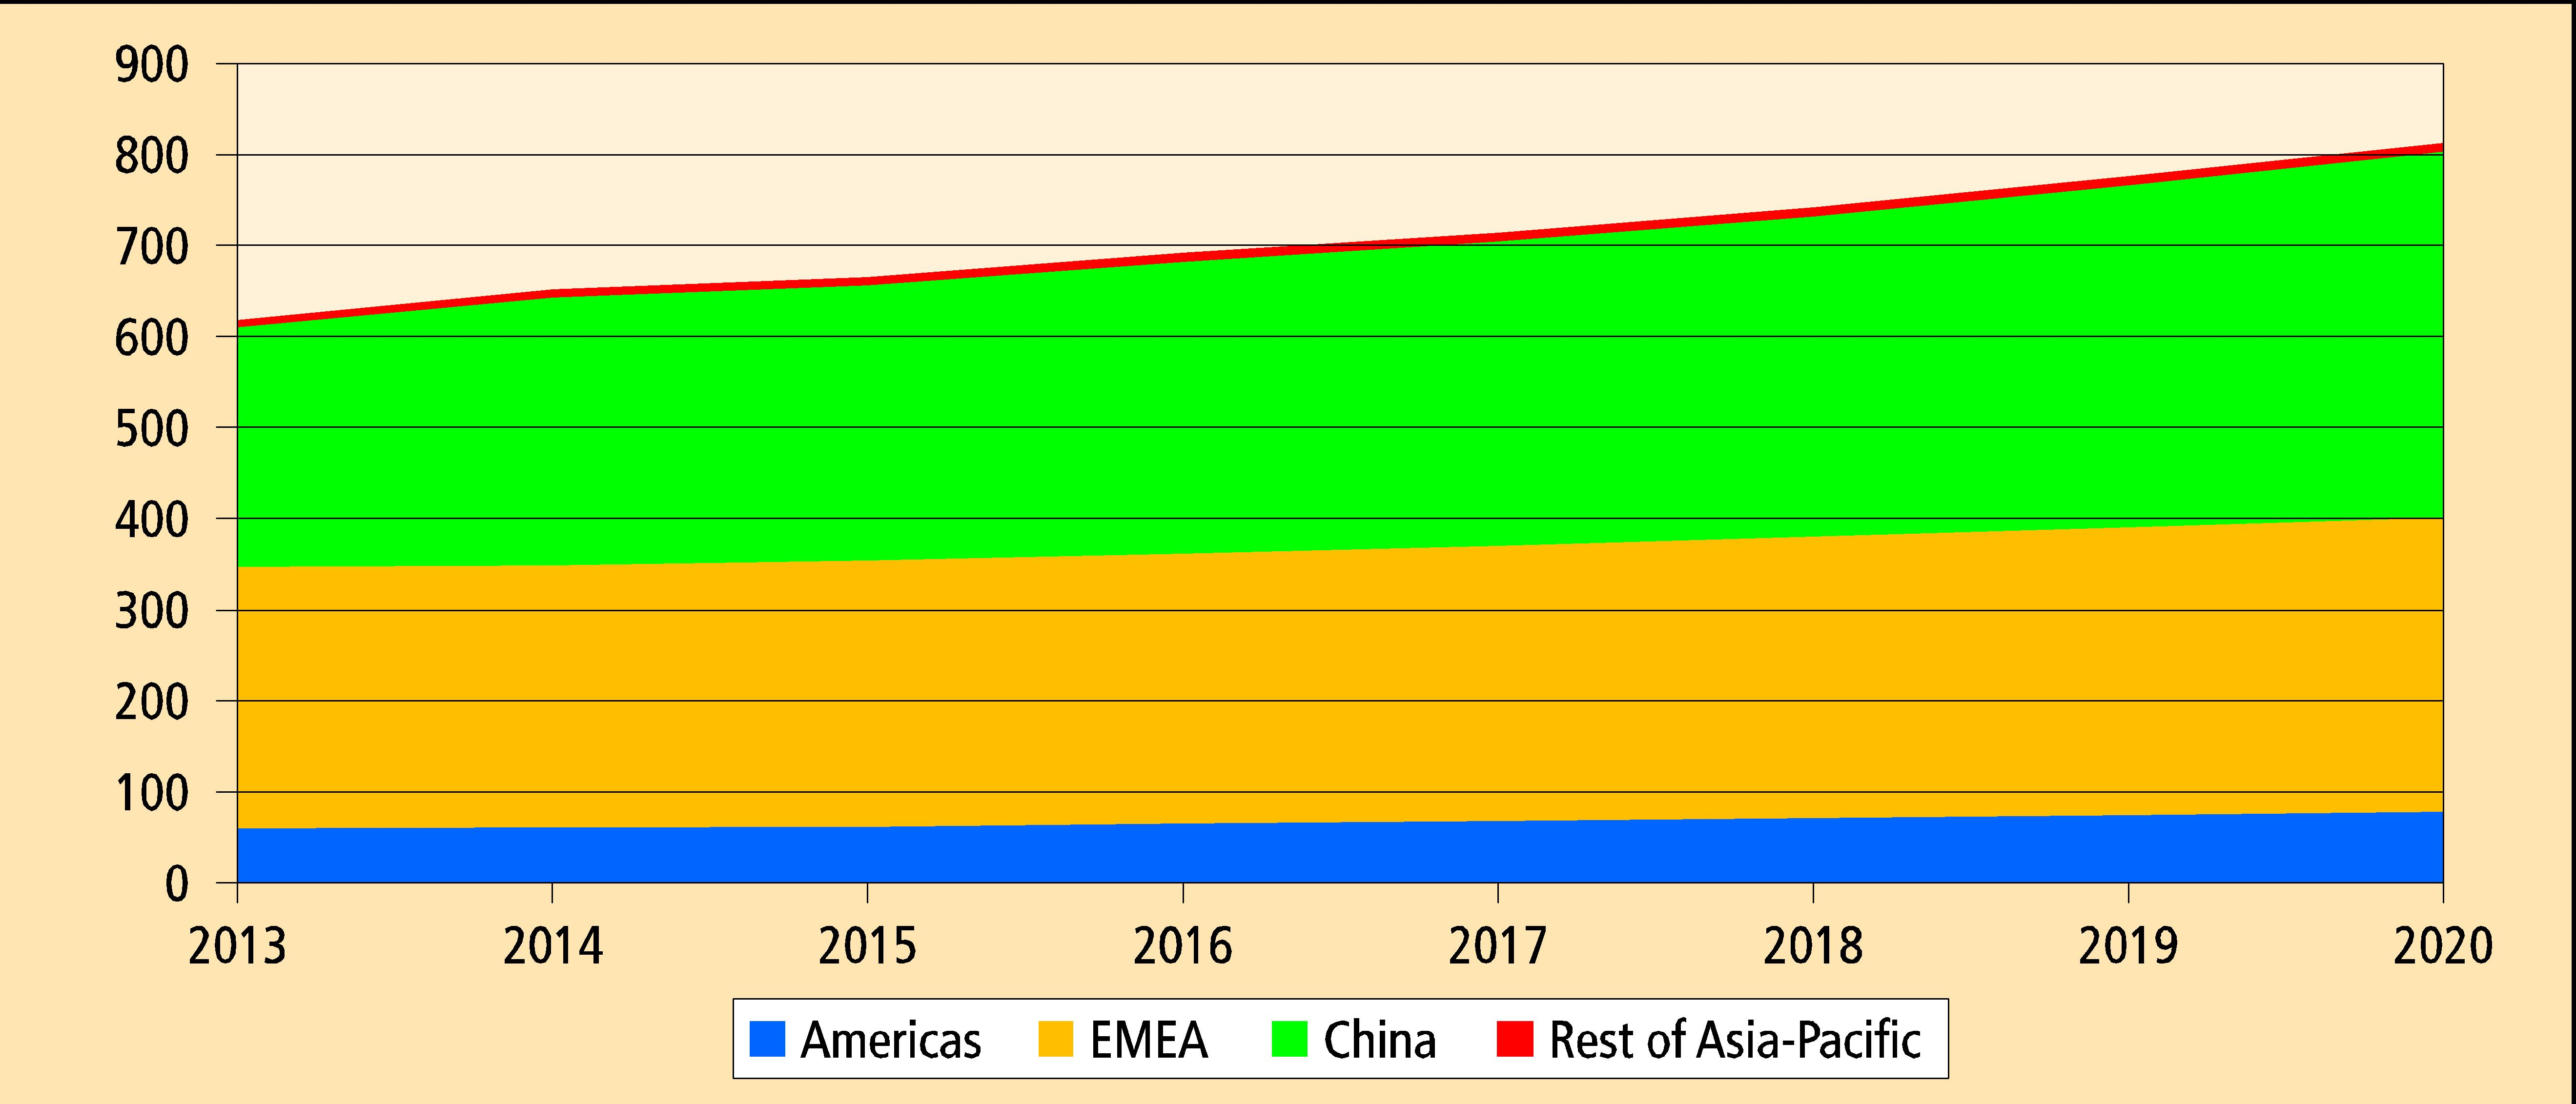 OCF production forecast to 2020 in million cans (Source: IAL Consultants)